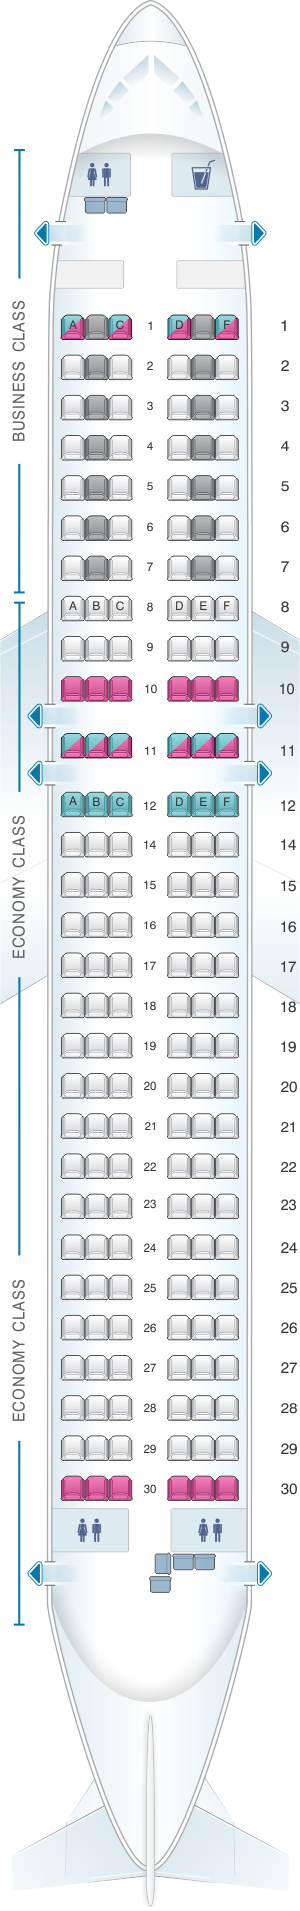 Seat map for Austrian Airlines Airbus A320